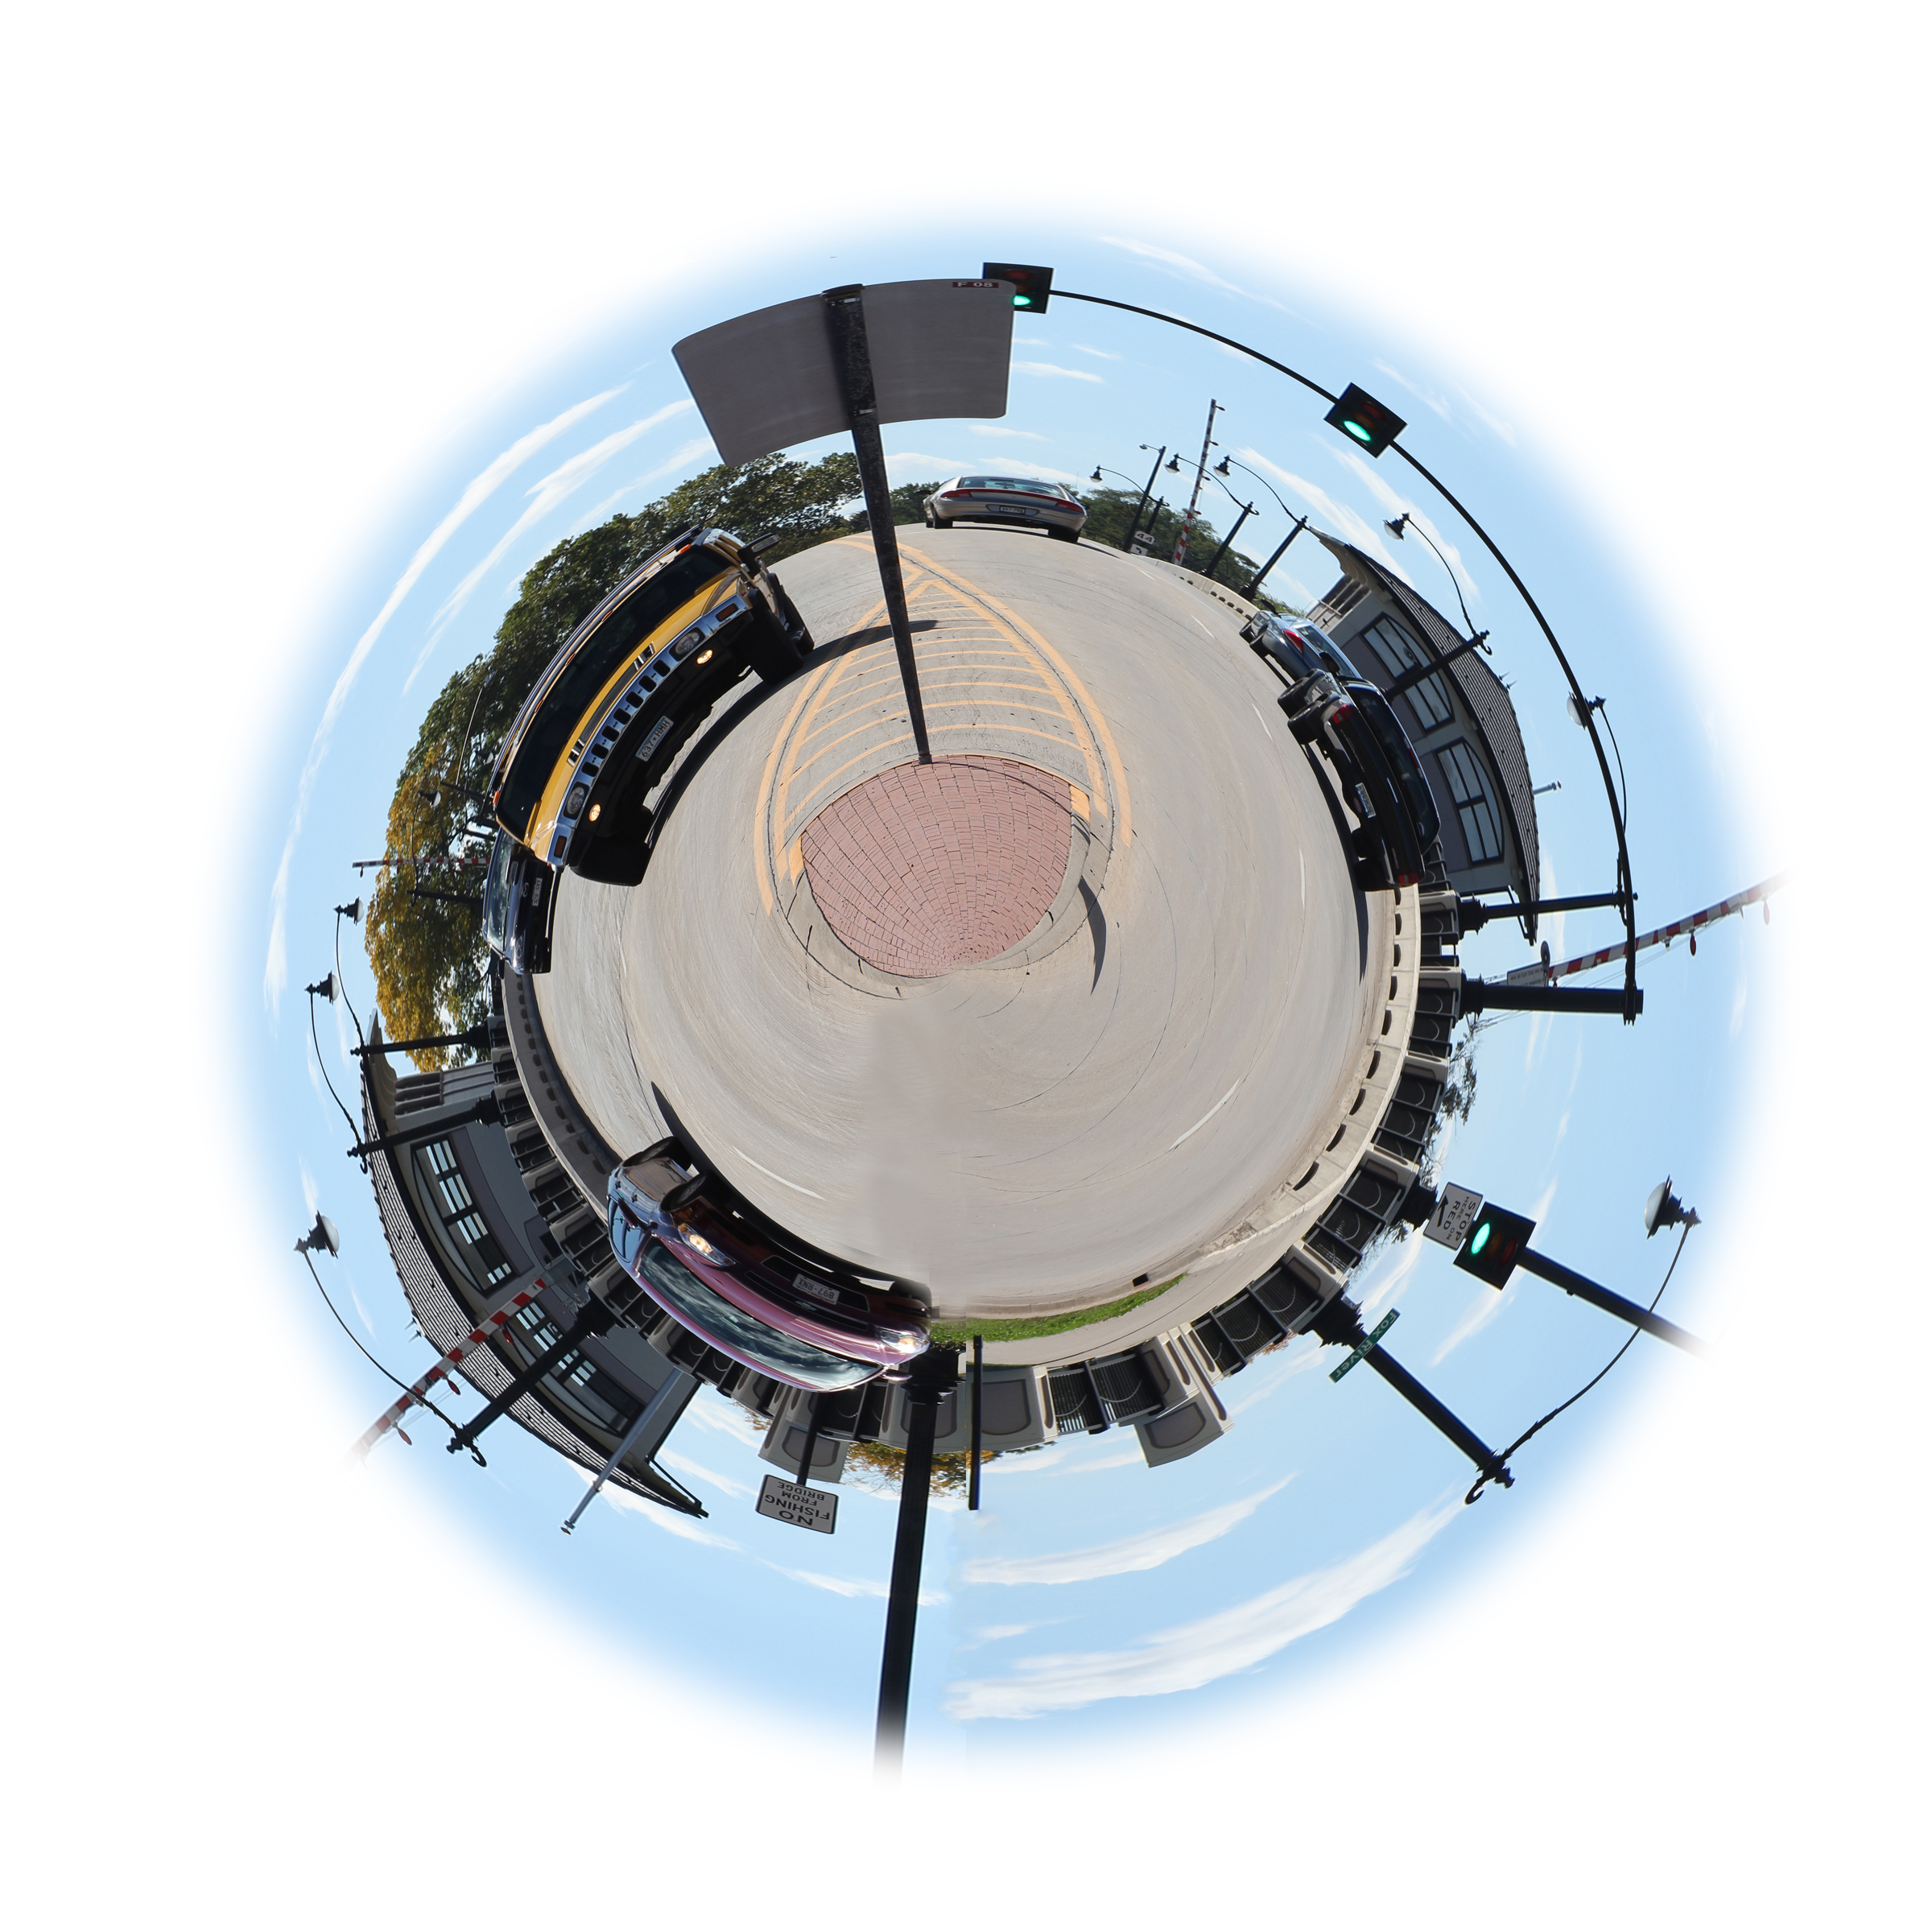 Planet_Bridge copy